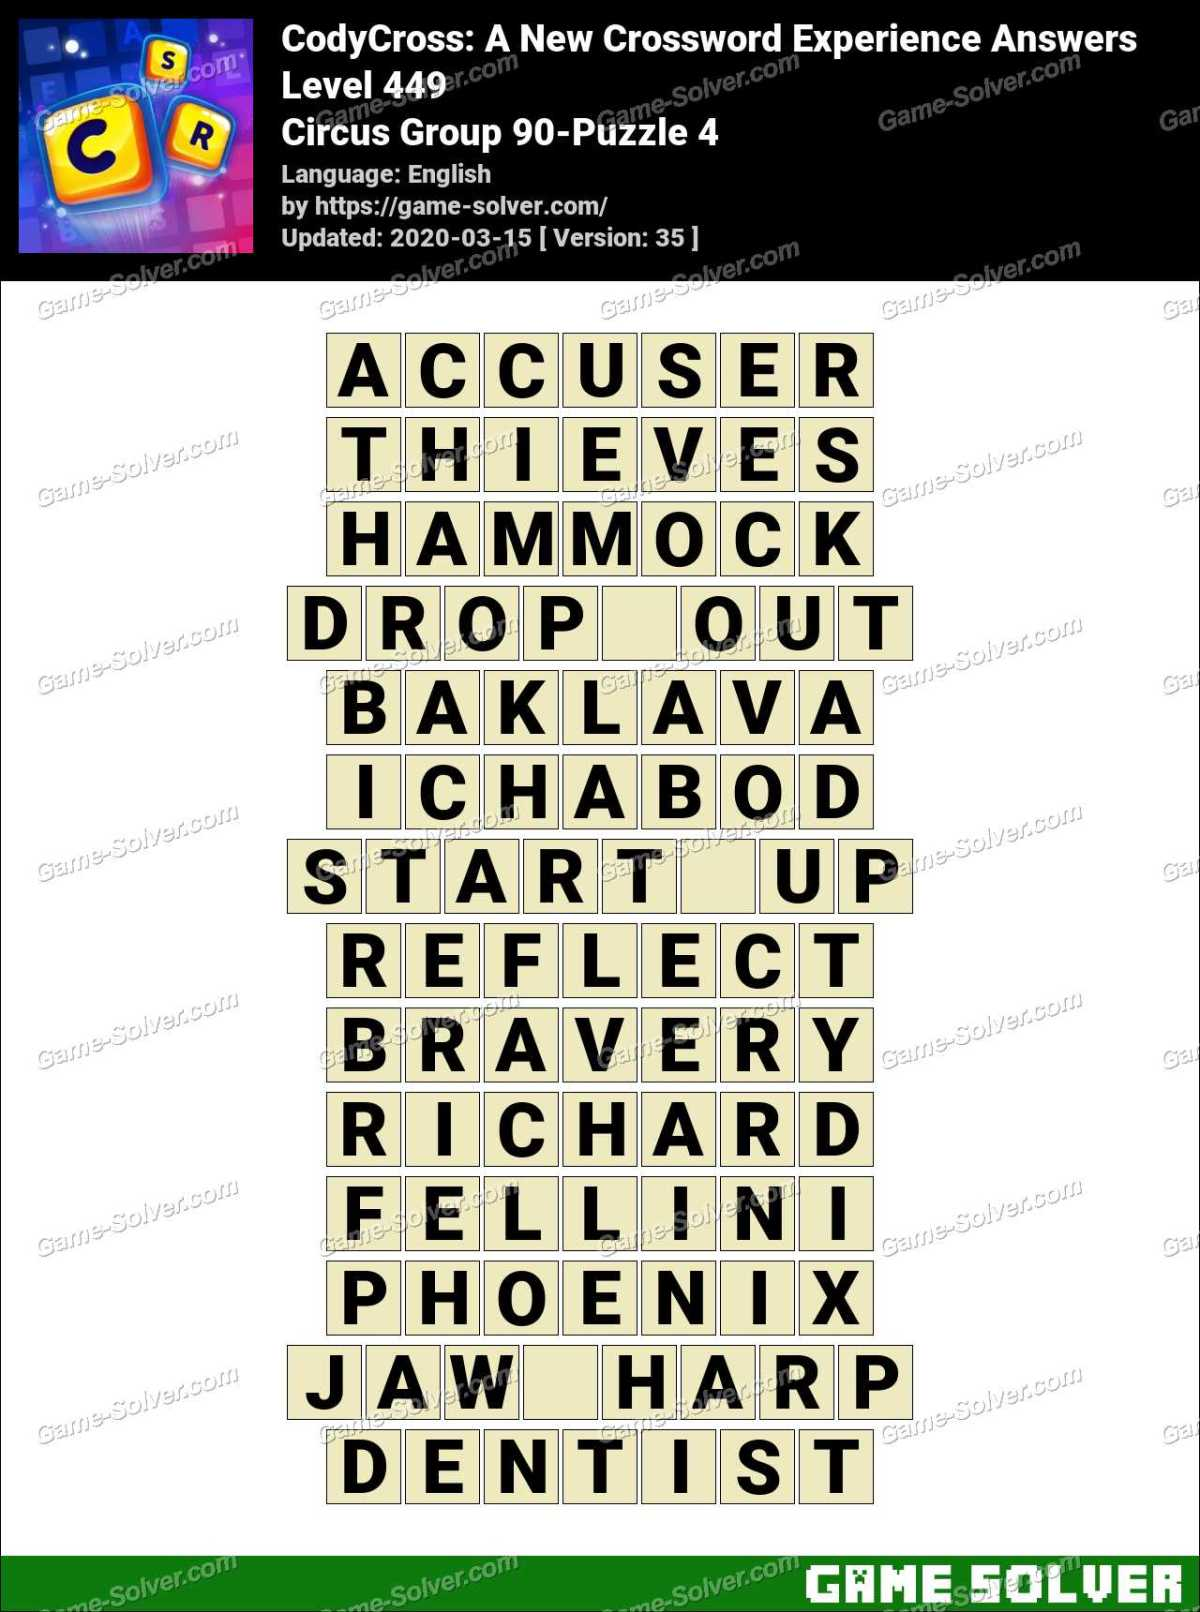 CodyCross Circus Group 90-Puzzle 4 Answers